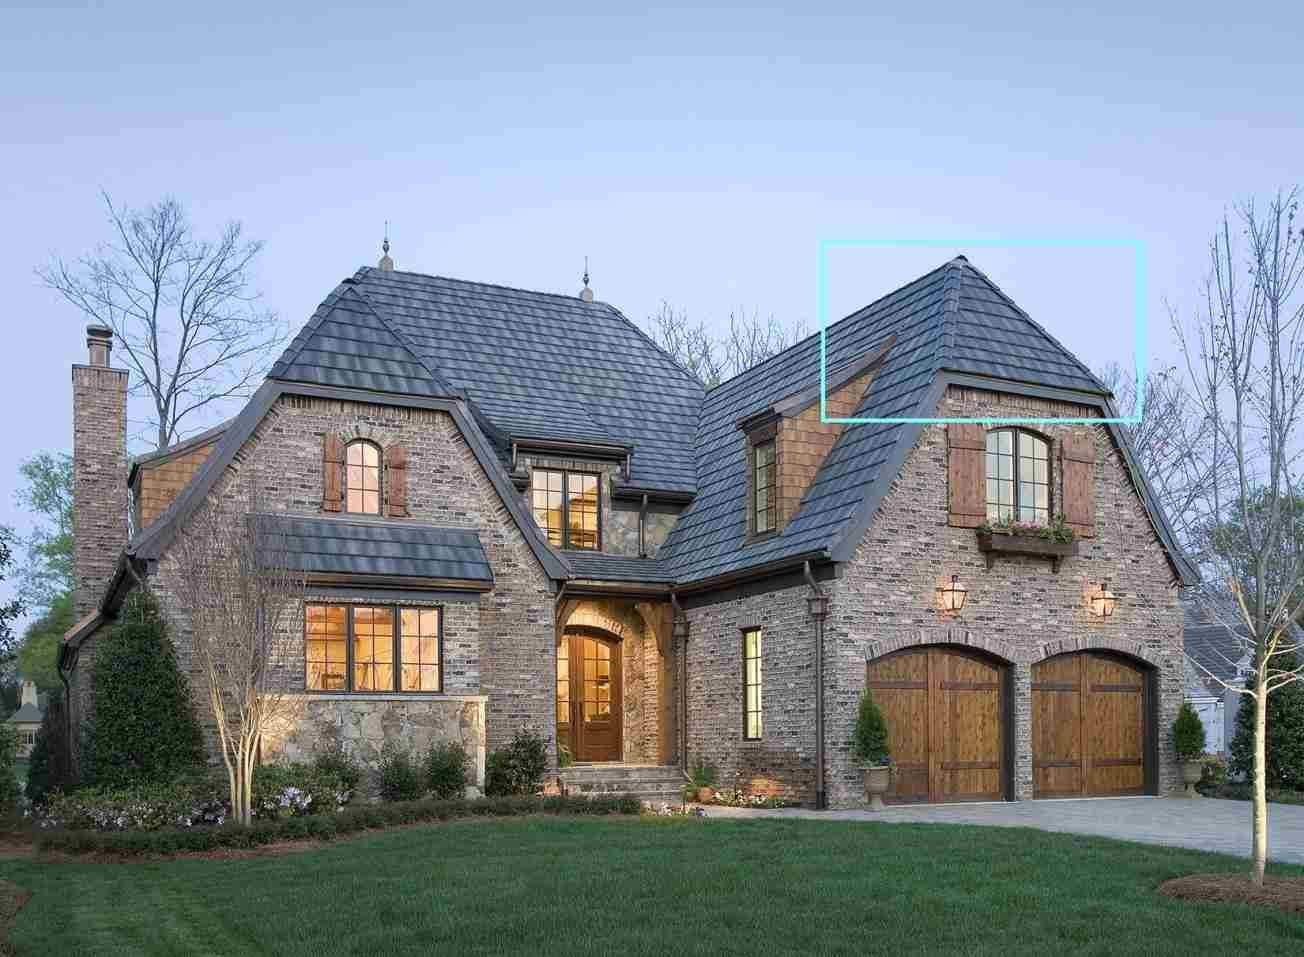 1 Half Hipped Roof Gable Roof Design Metal Building House Plans Gable House